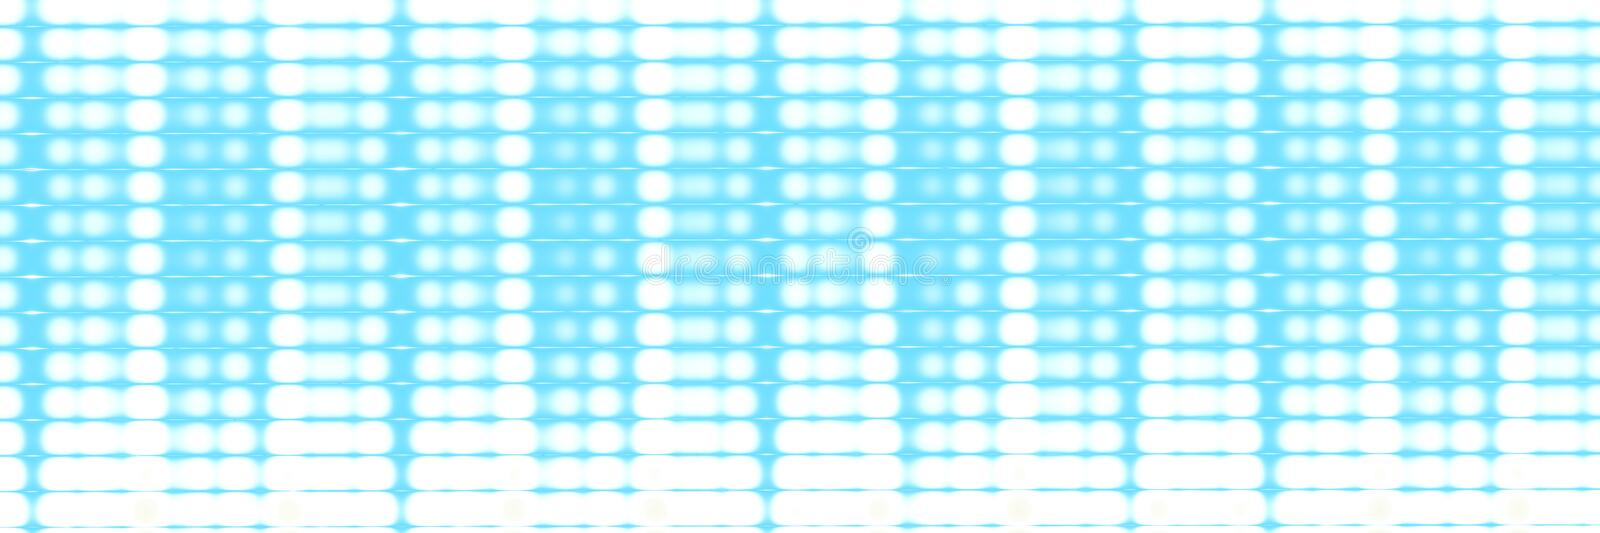 Technology blue widescreen graphic headers stock illustration